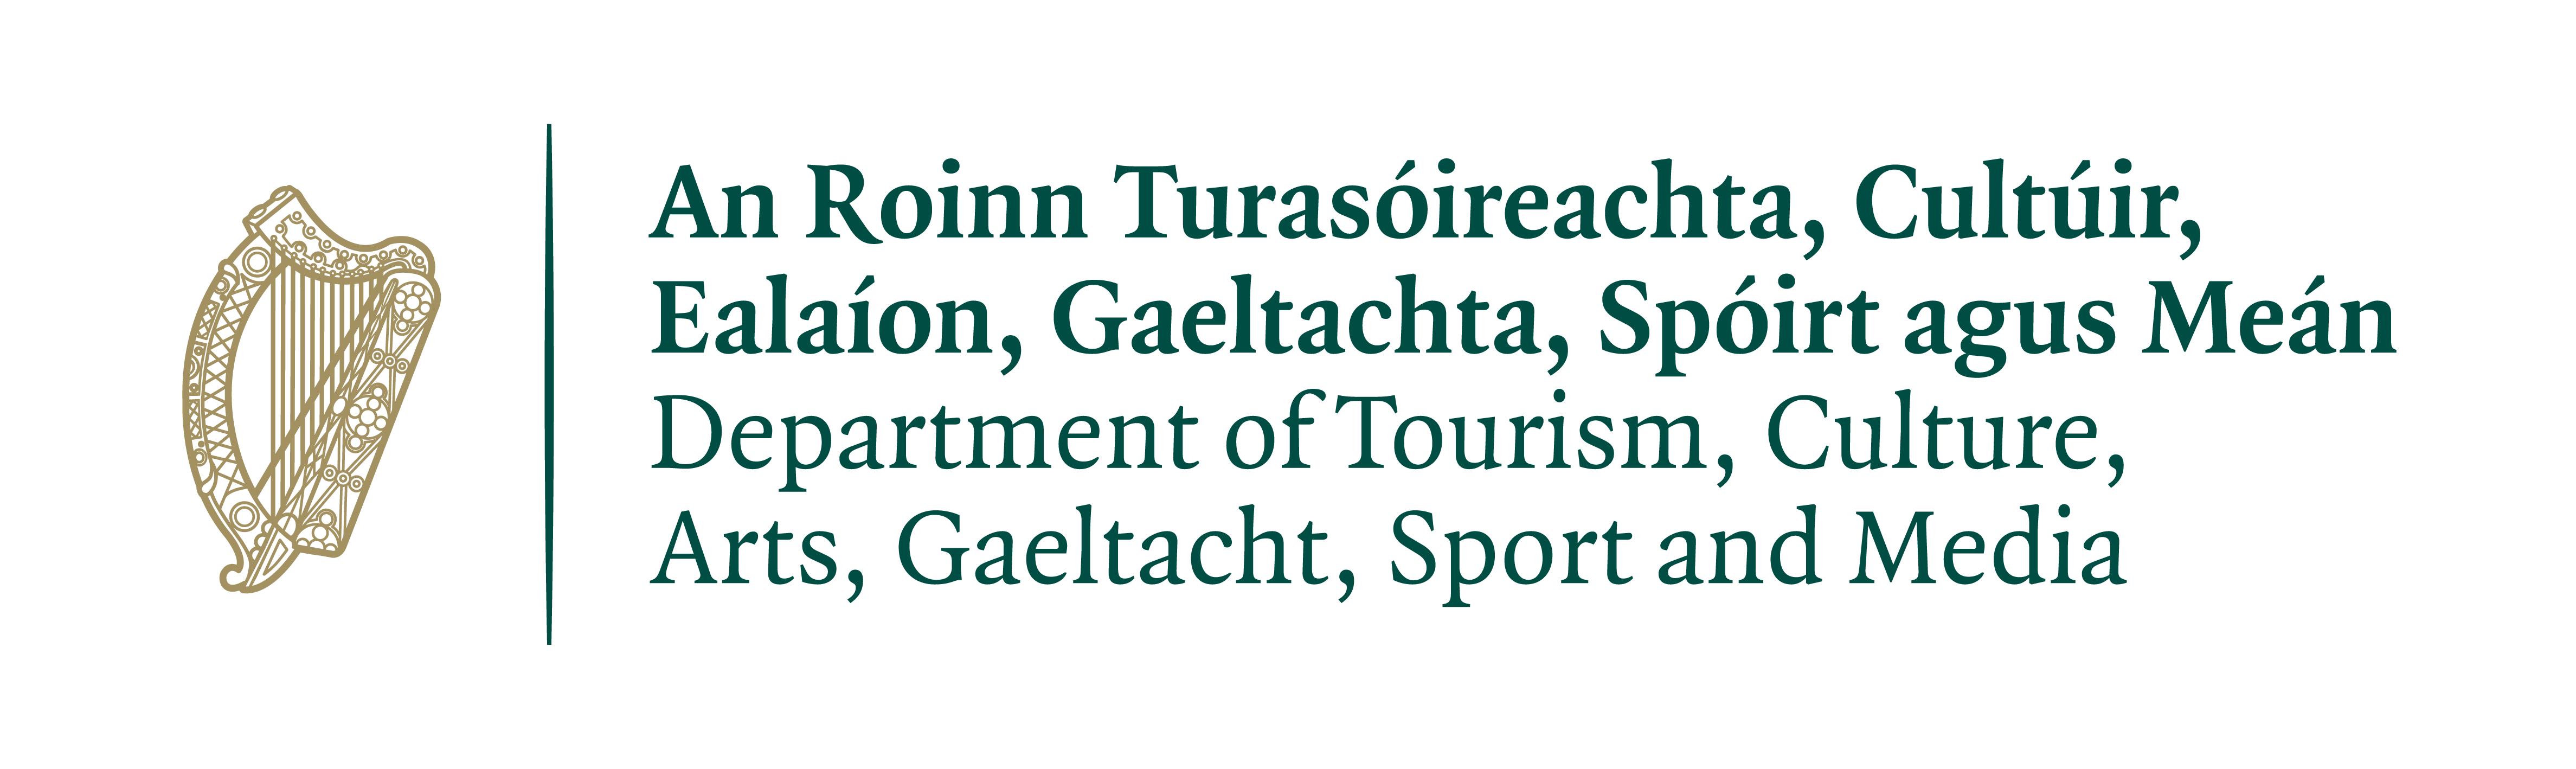 Secretary General of the Department of Tourism, Culture, Arts, Gaeltacht, Sport and Media